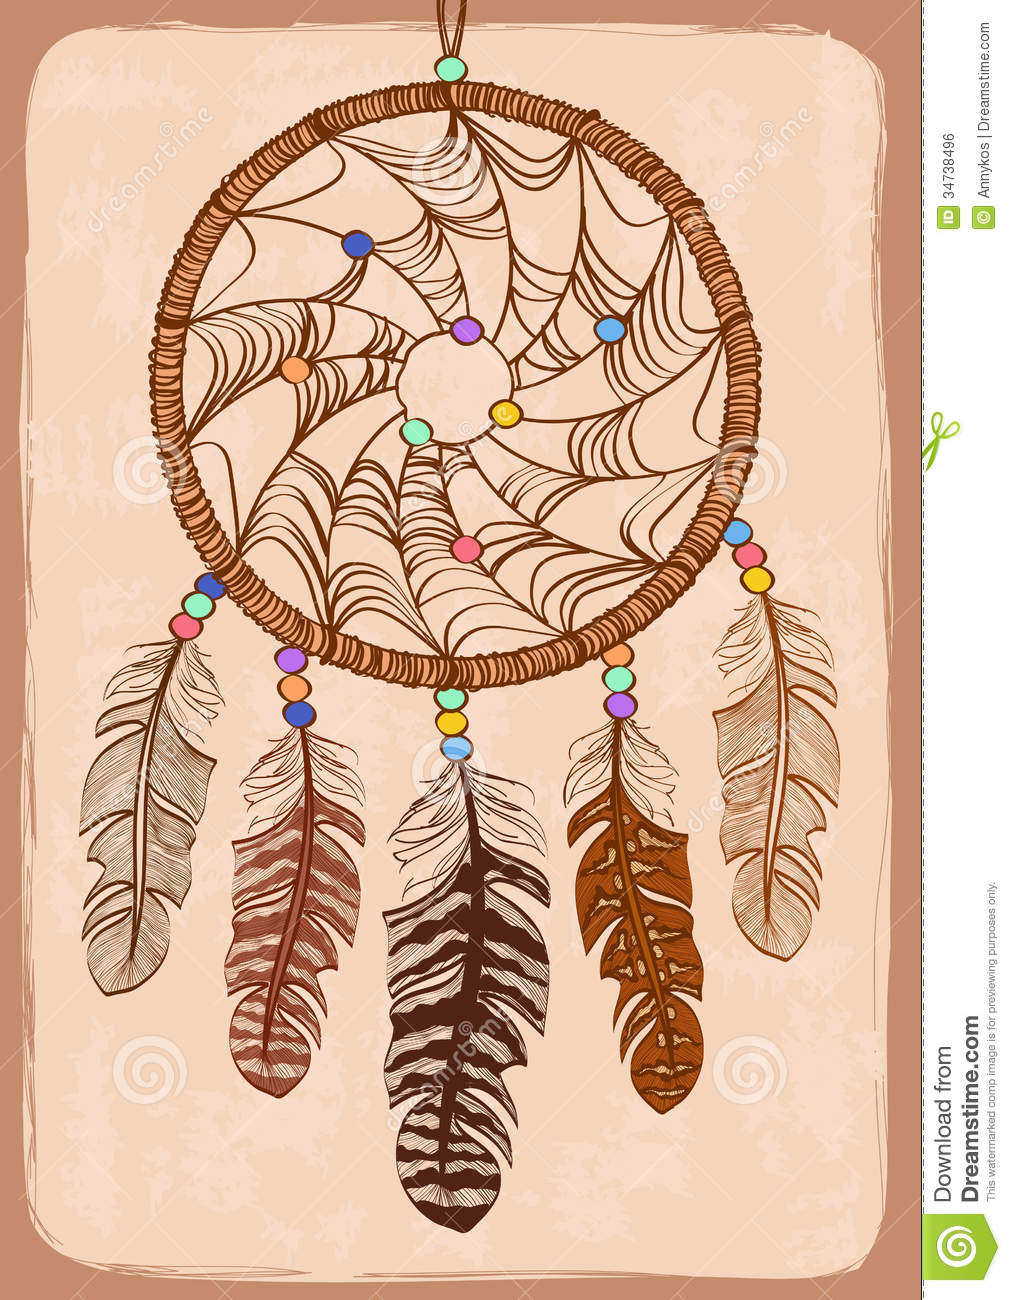 Illustration With Tribal Dreamcatcher Royalty Free Stock